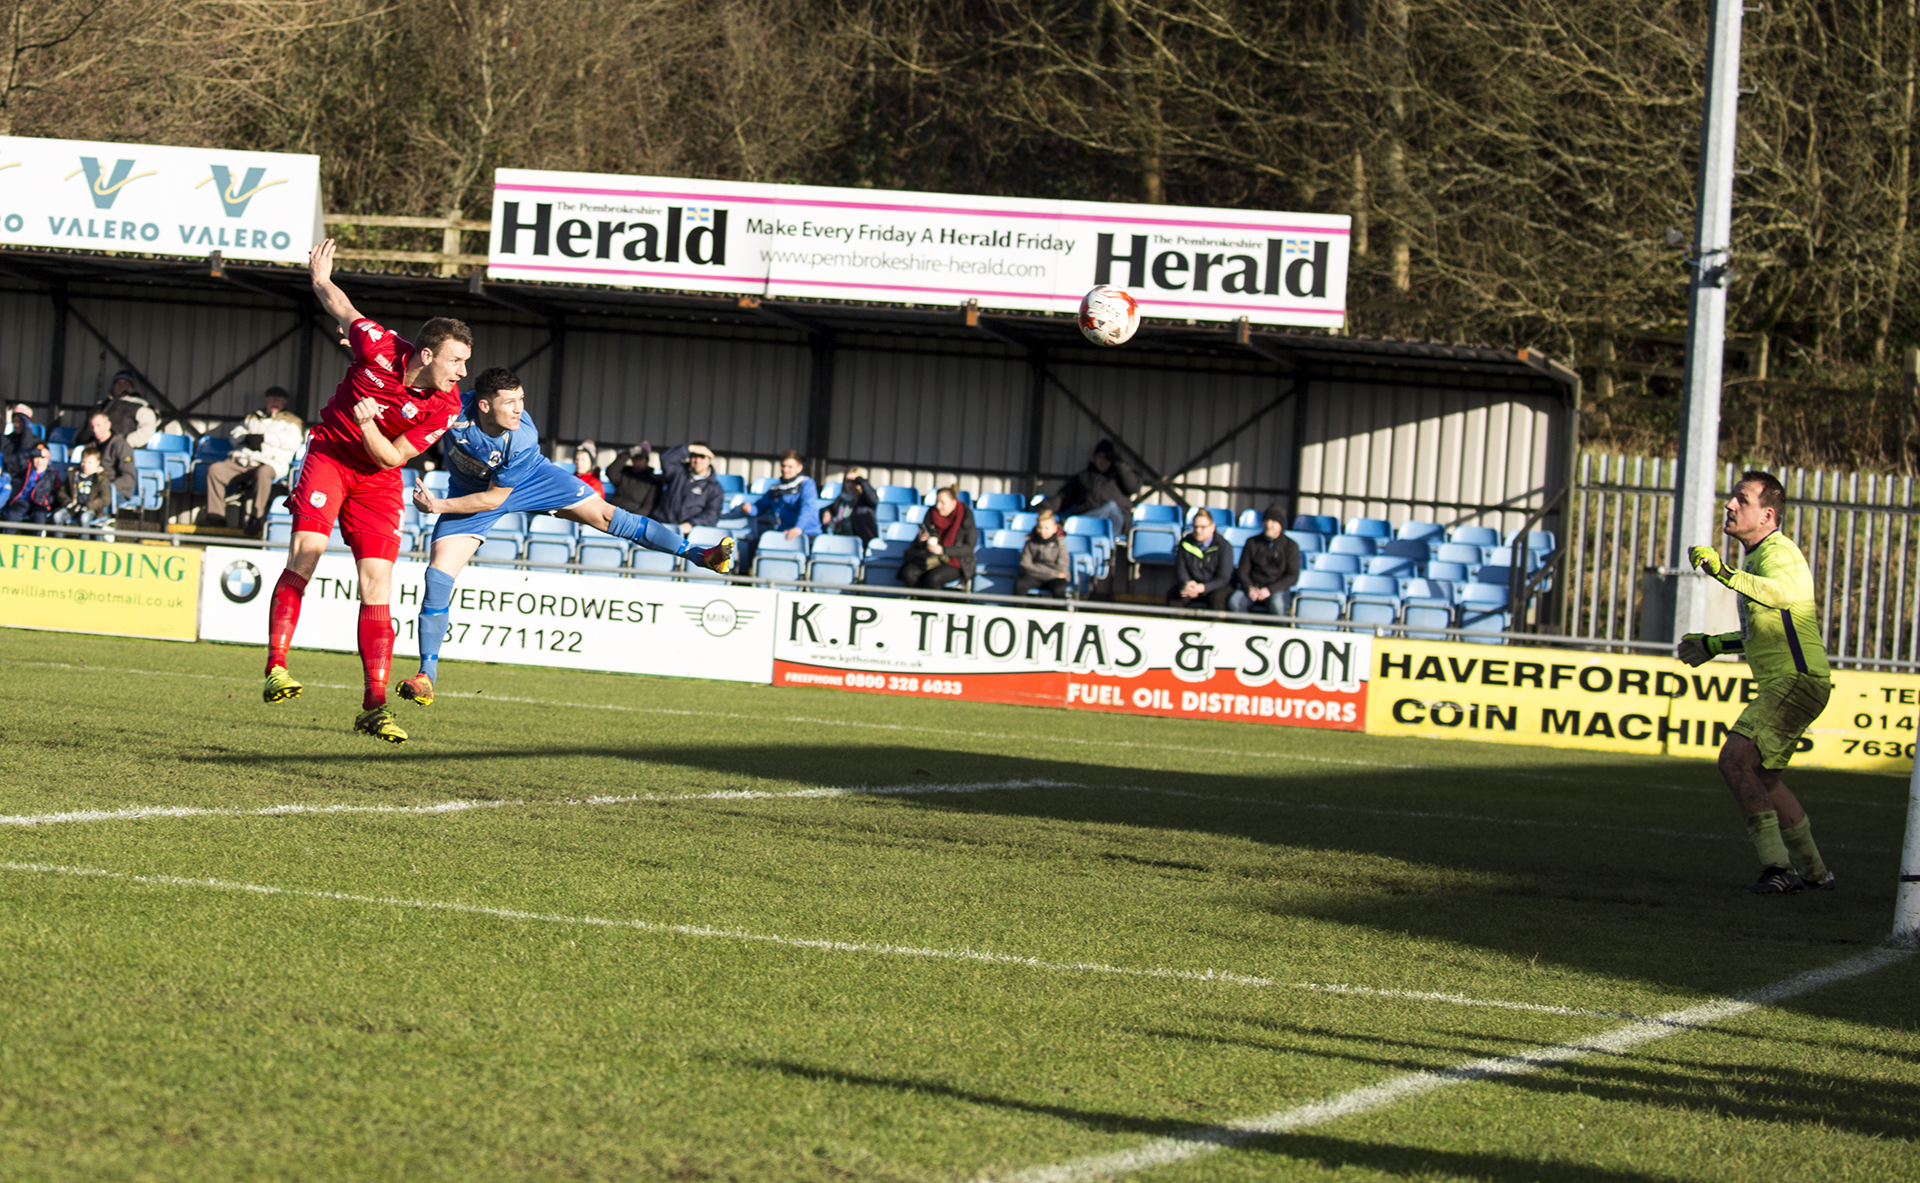 Les Davies gives The Nomads the lead with a powerful header in the 10th minute - © NCM Media